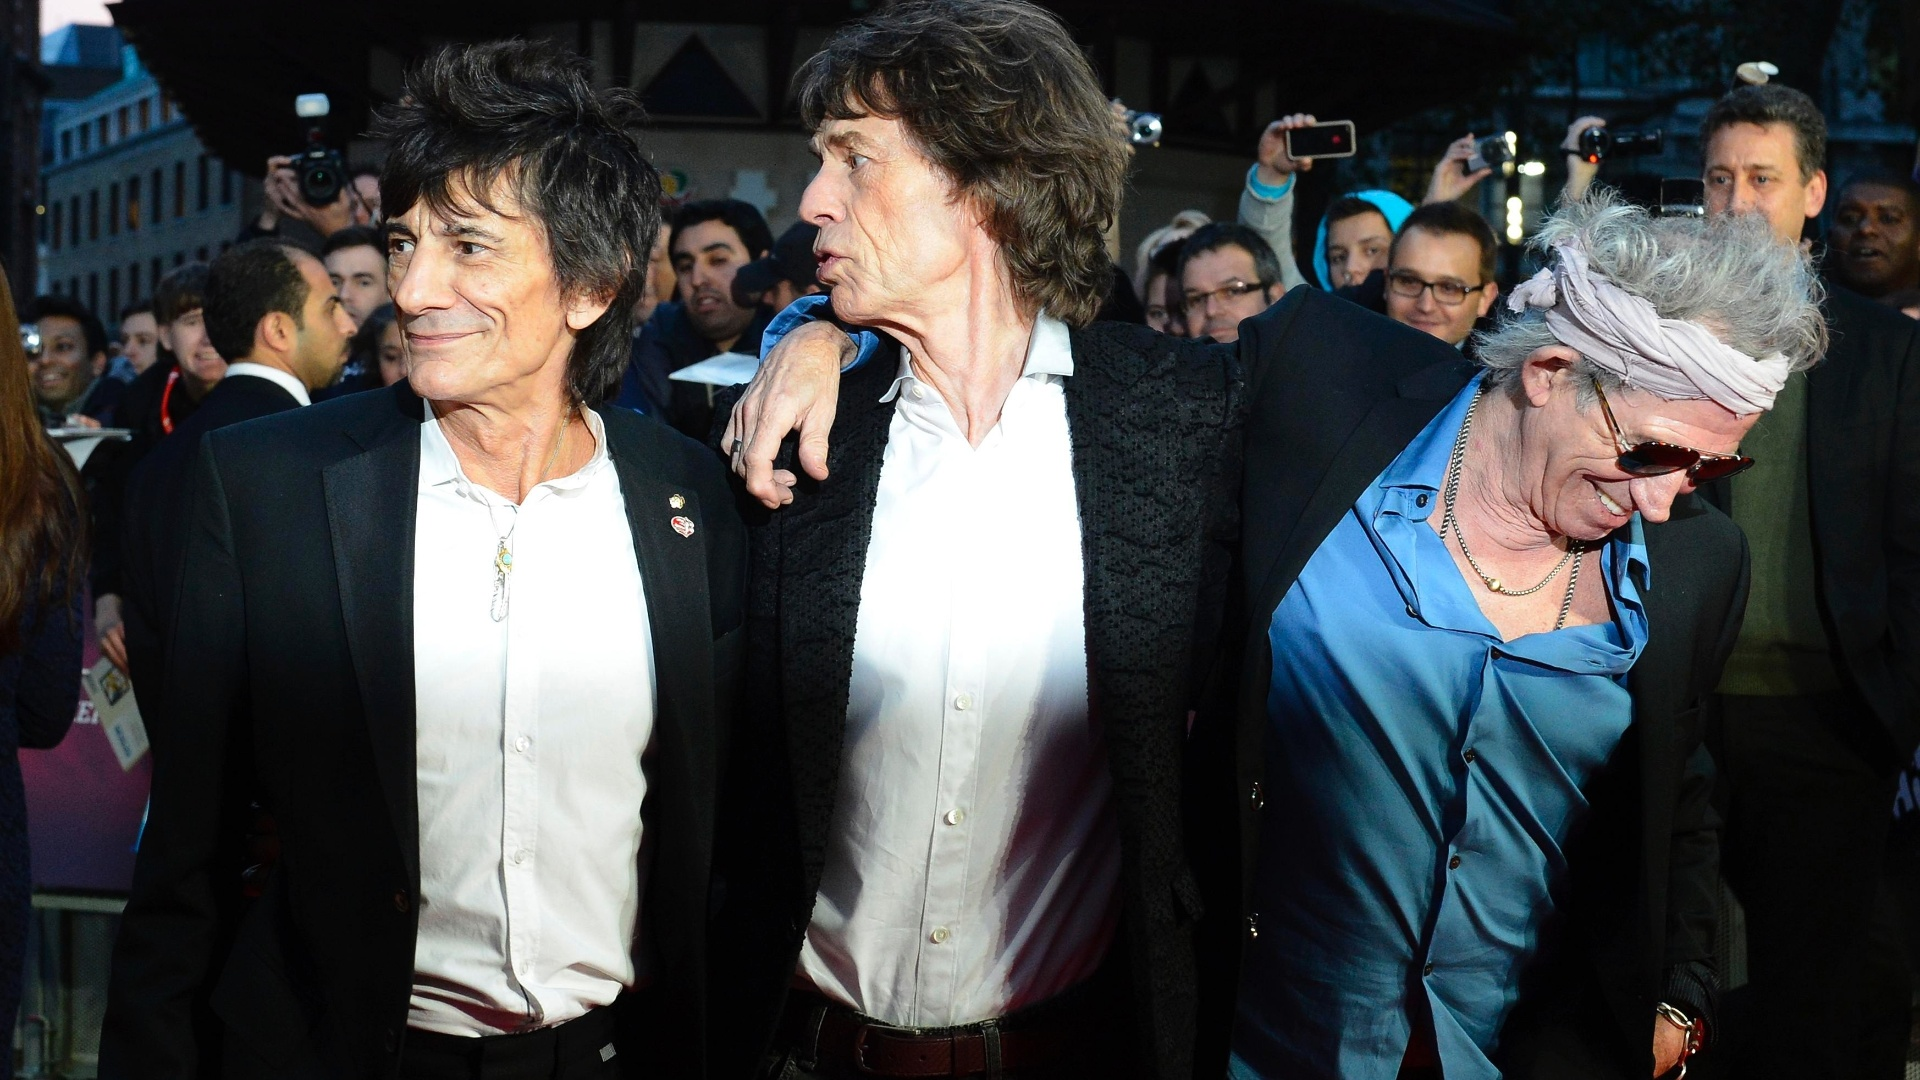 Ron Wood, Mick Jagger e Keith Richards participam de première de documentário em Londres (18/10/12)